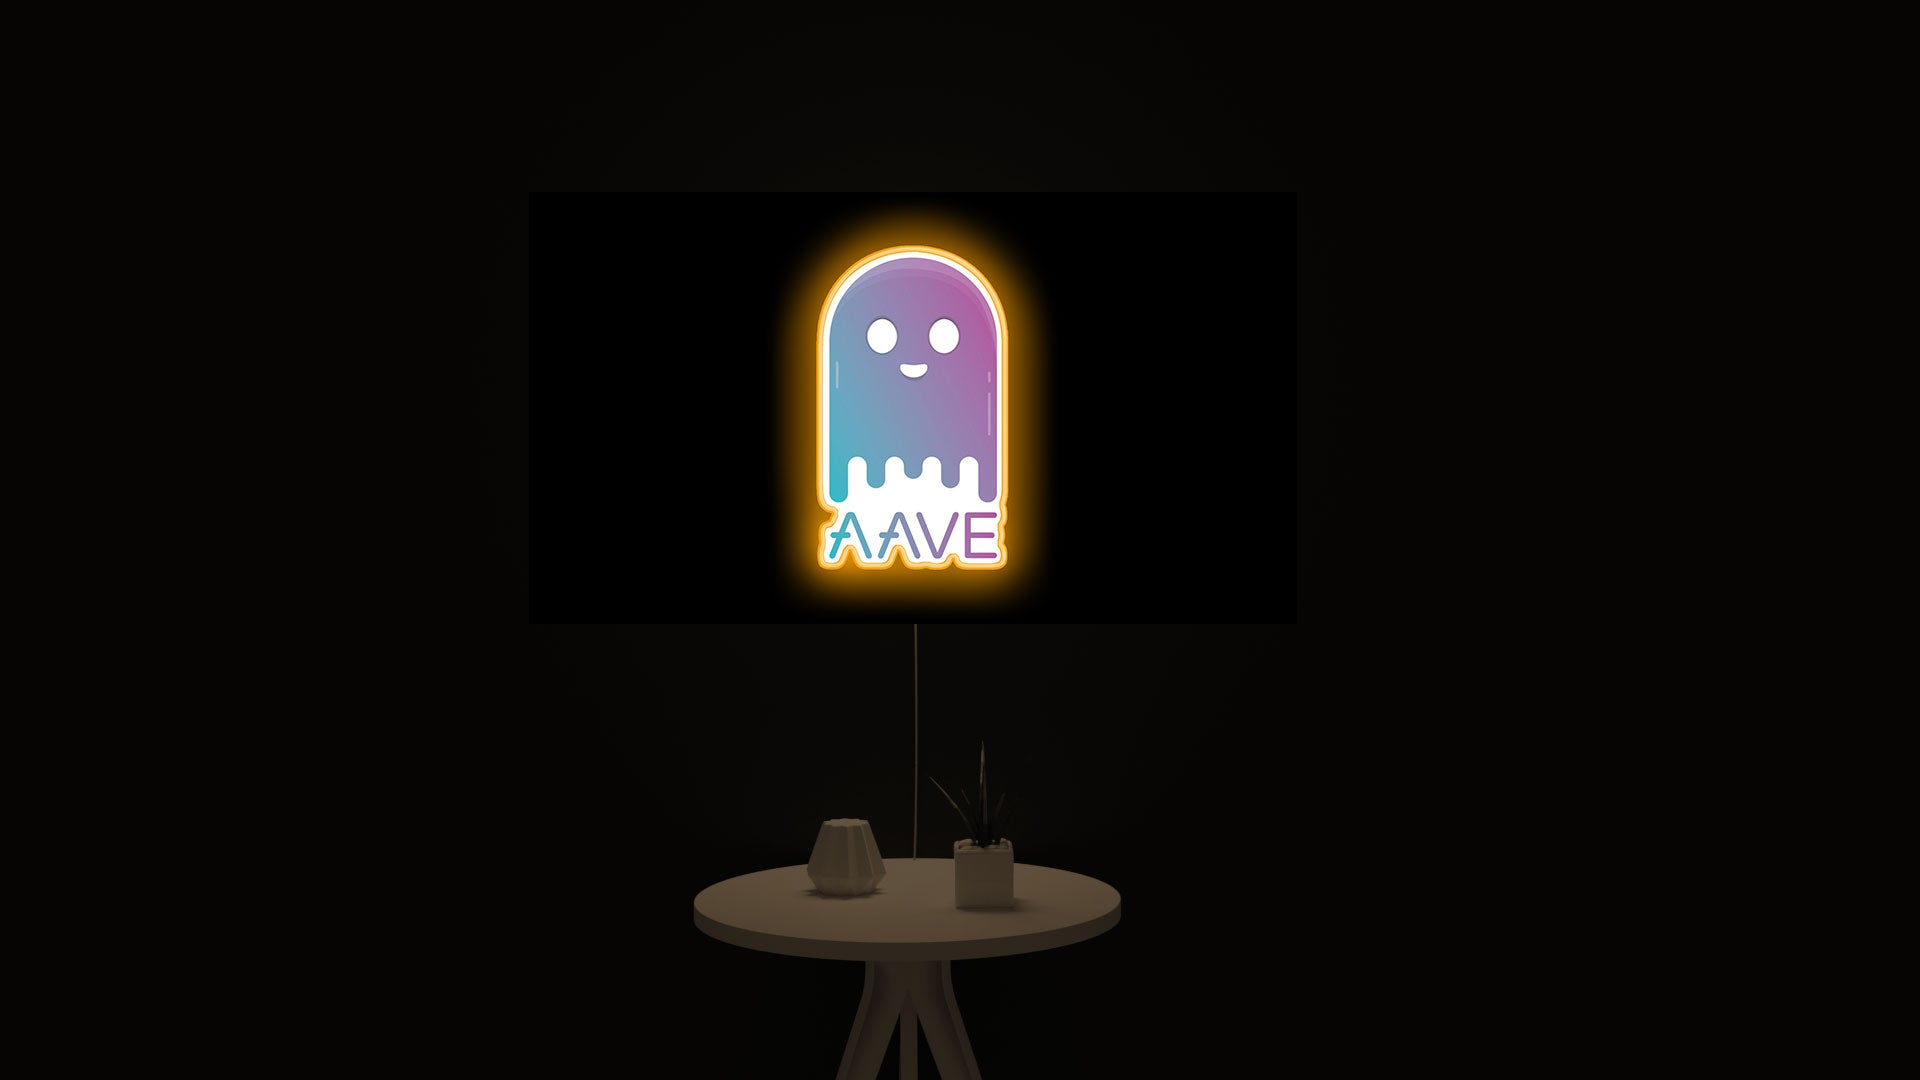 """AAVE """"LEND"""" Crypto led light sign"""